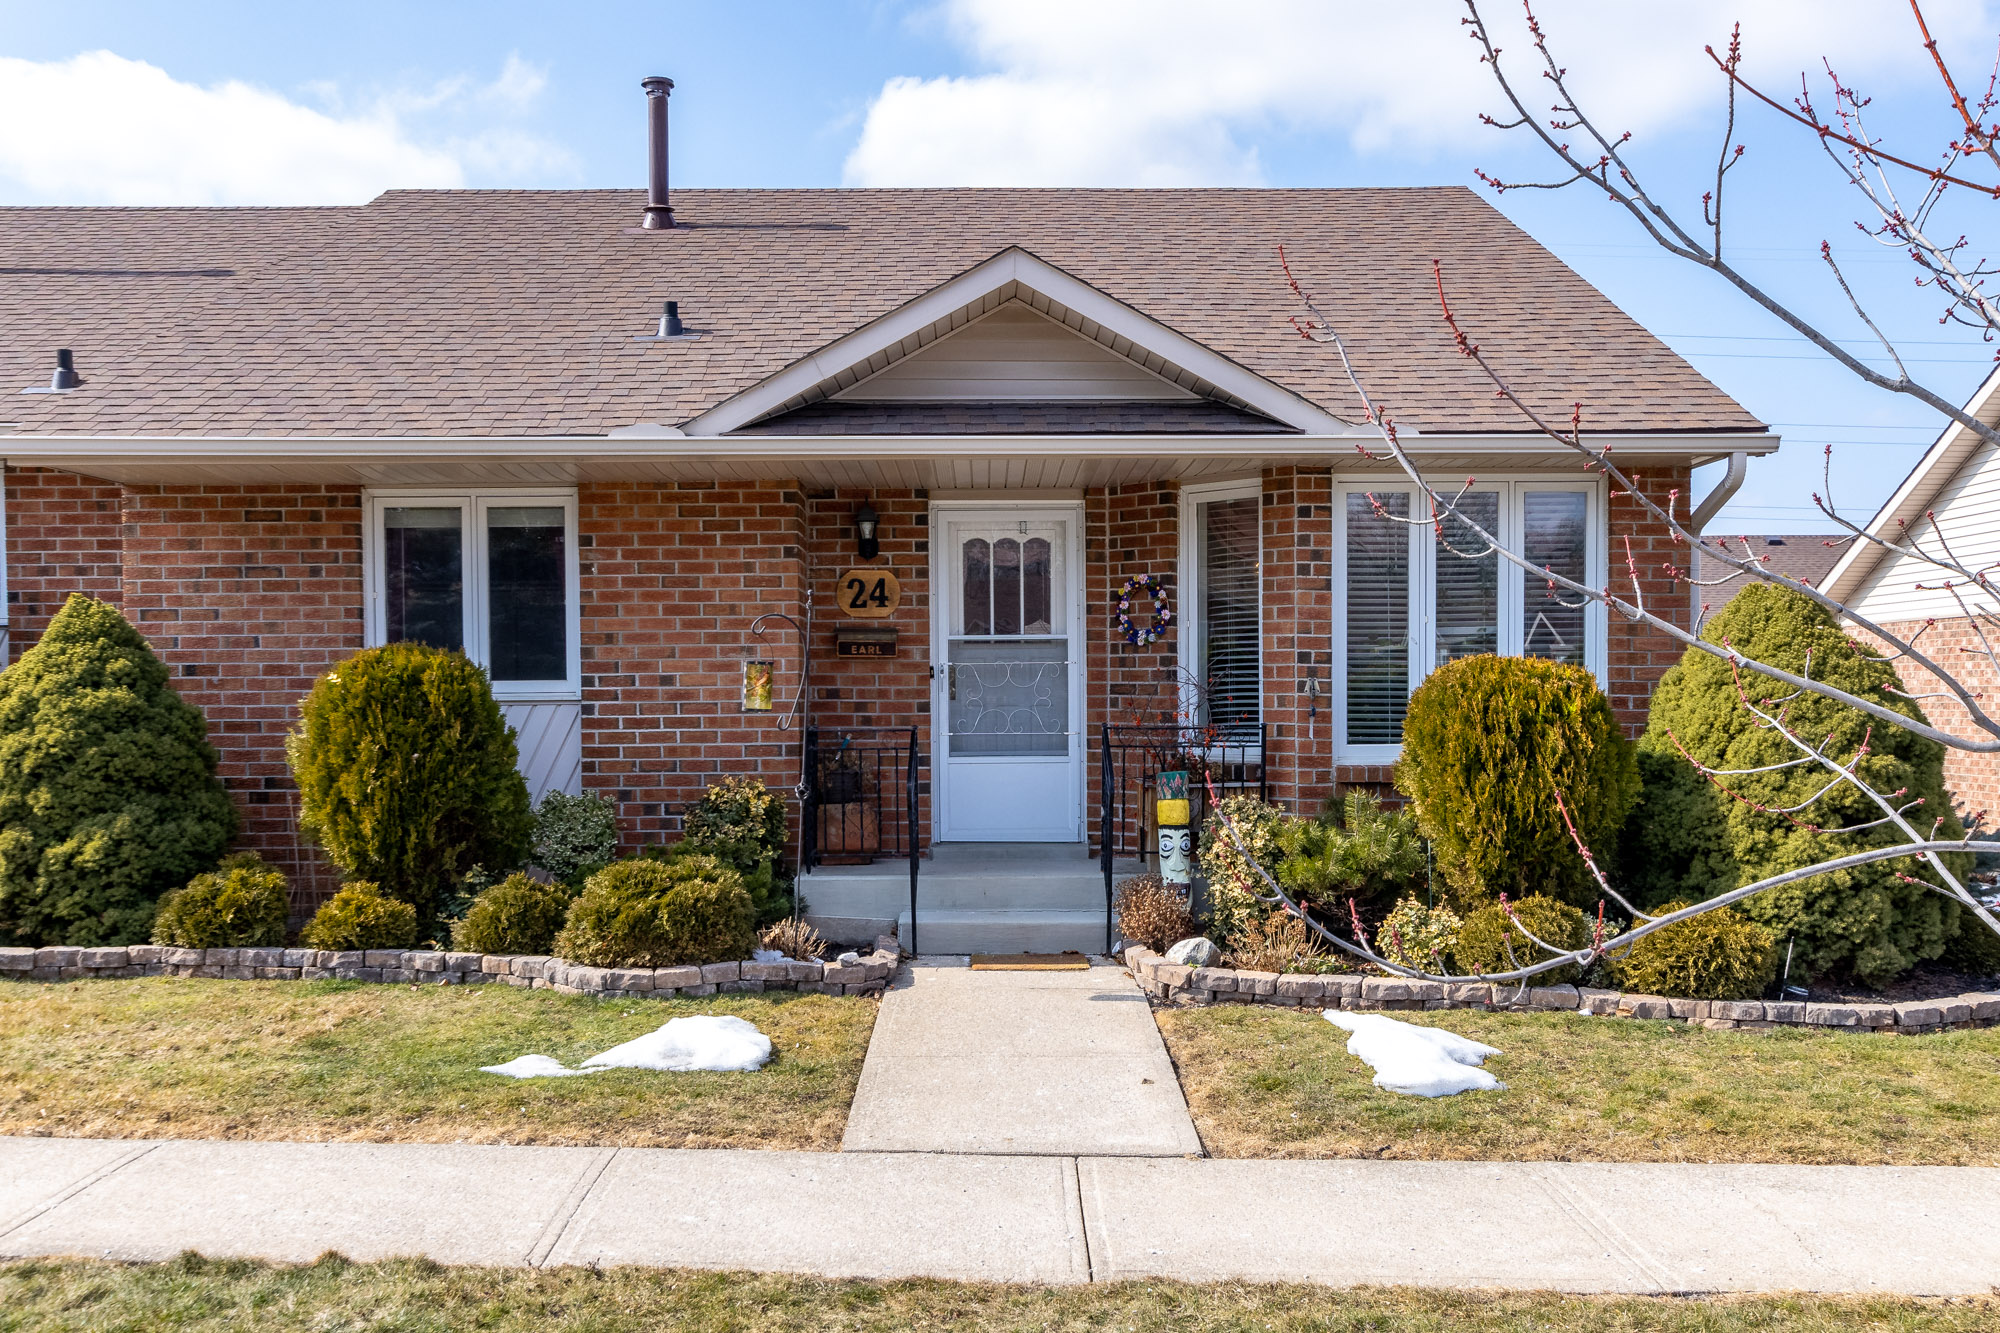 Property image for 122 BUNTING Road Unit #24, St. Catharines